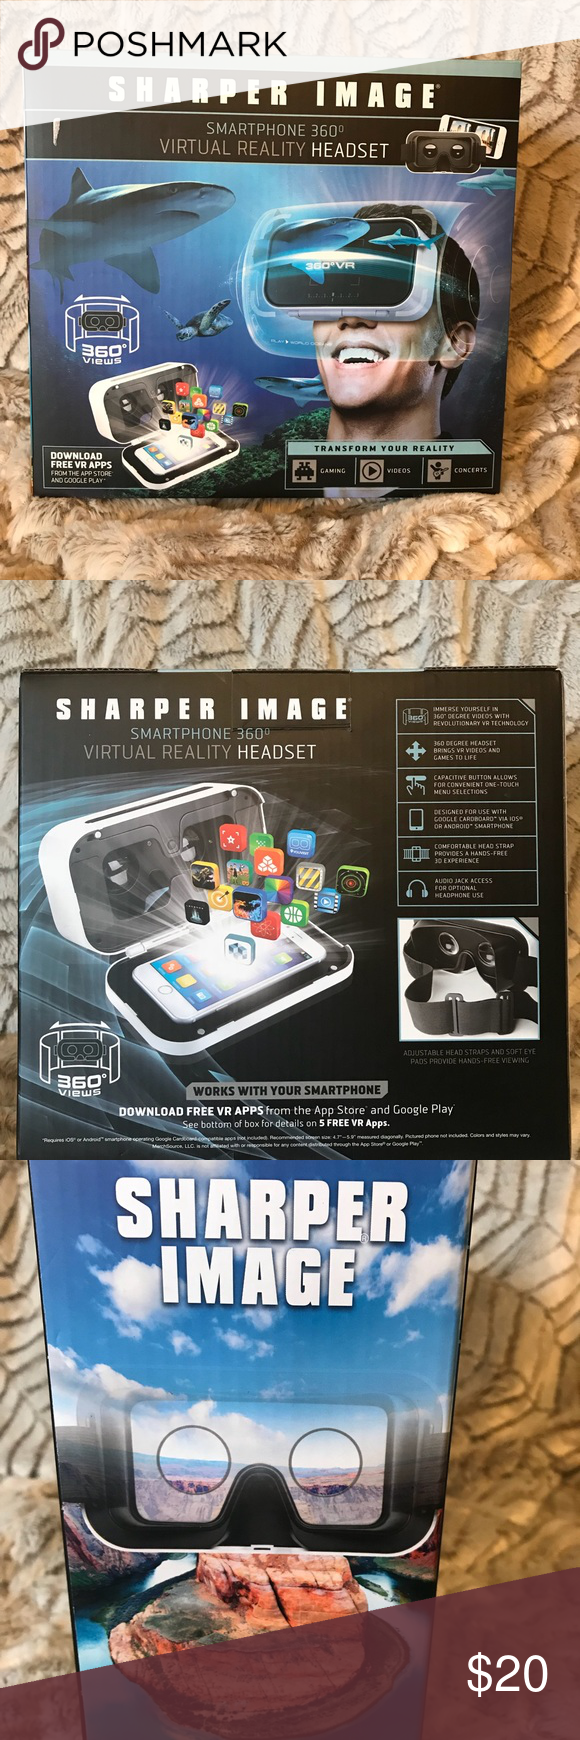 Sharper Image Smartphone 360 V Reality Headset Nwt In 2018 My Posh